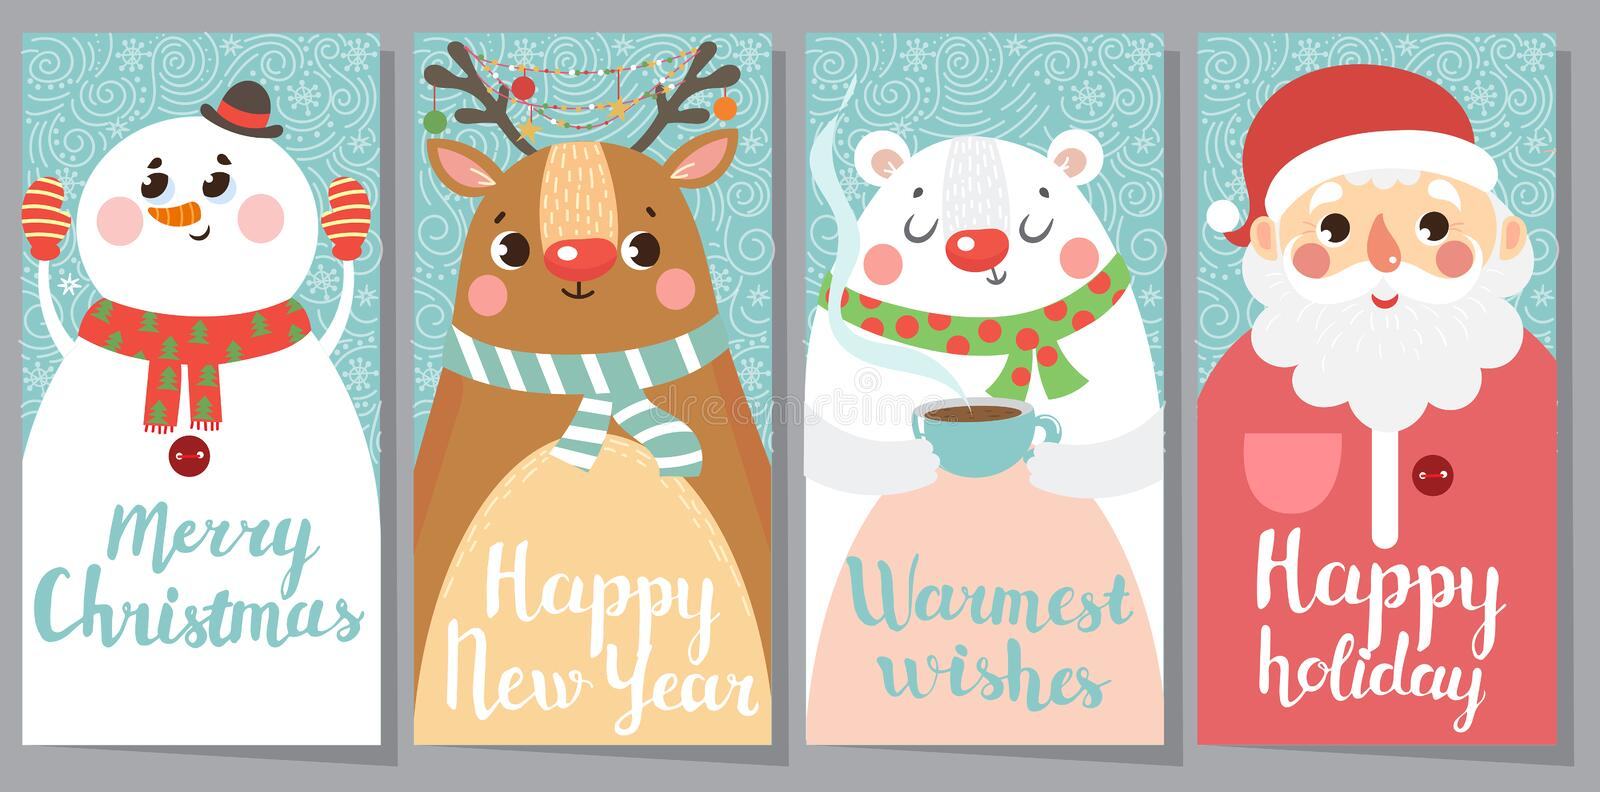 Set of Christmas and New Year greeting cards. vector illustration